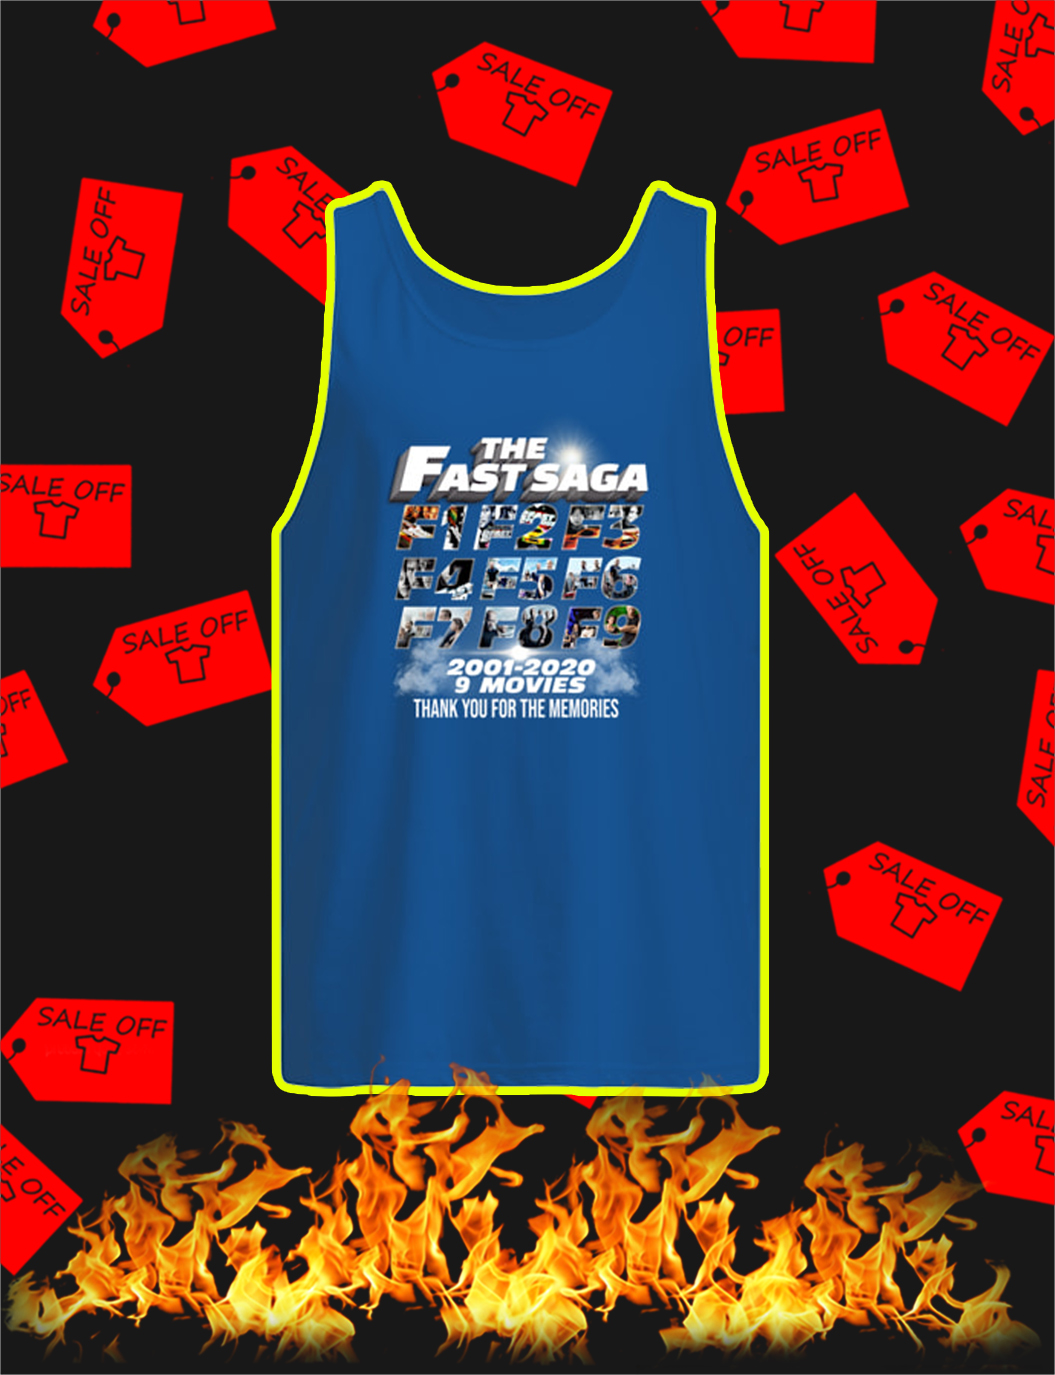 The Fast Saga 2001 2020 Thank You For The Memories tank top